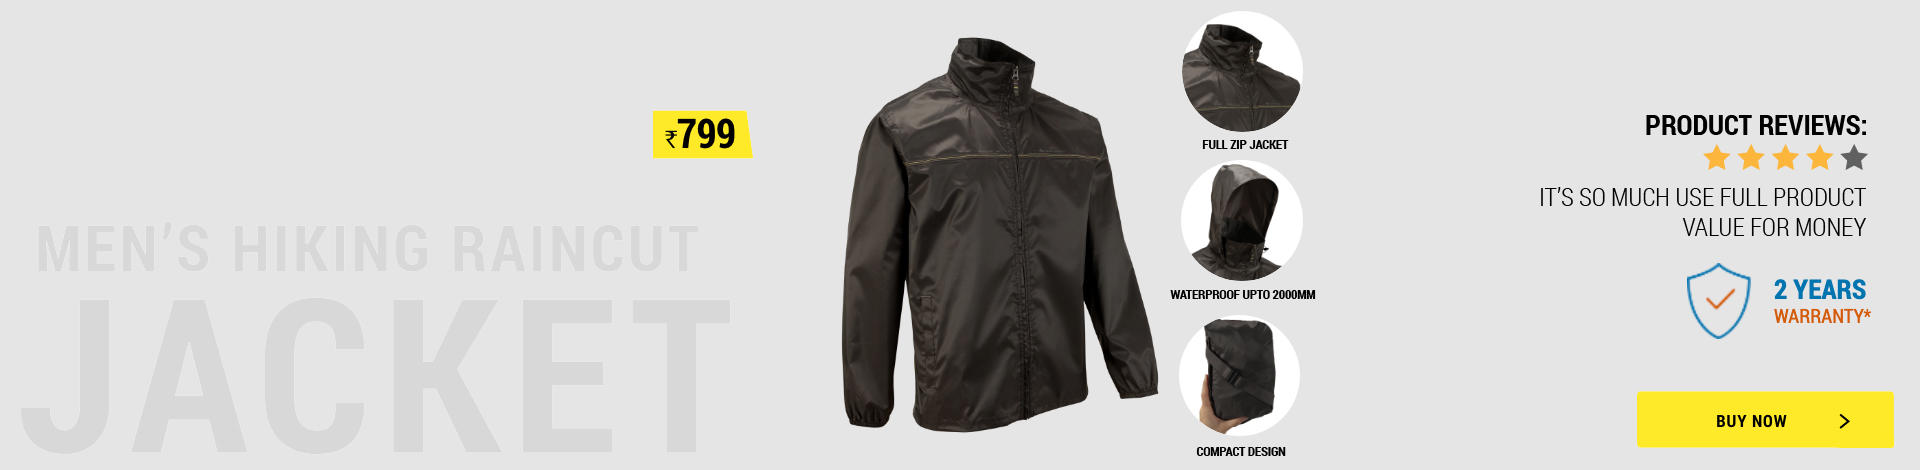 Hiking Waterproof Jacket, rain jacket, low cost rain jacket